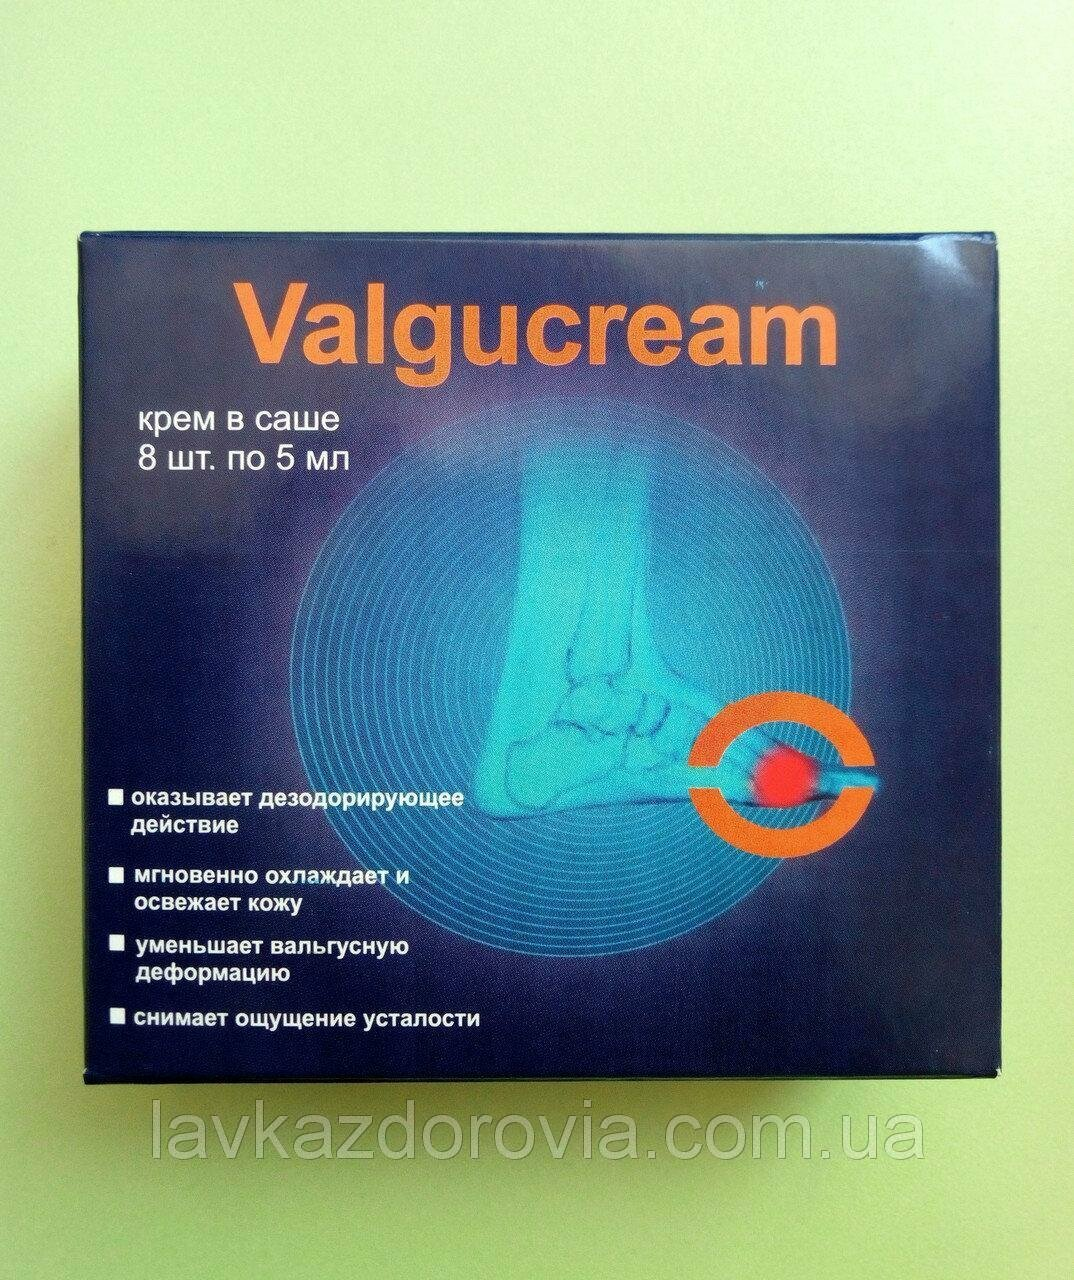 Valgucream - крем от вальгусной деформации в Златоусте